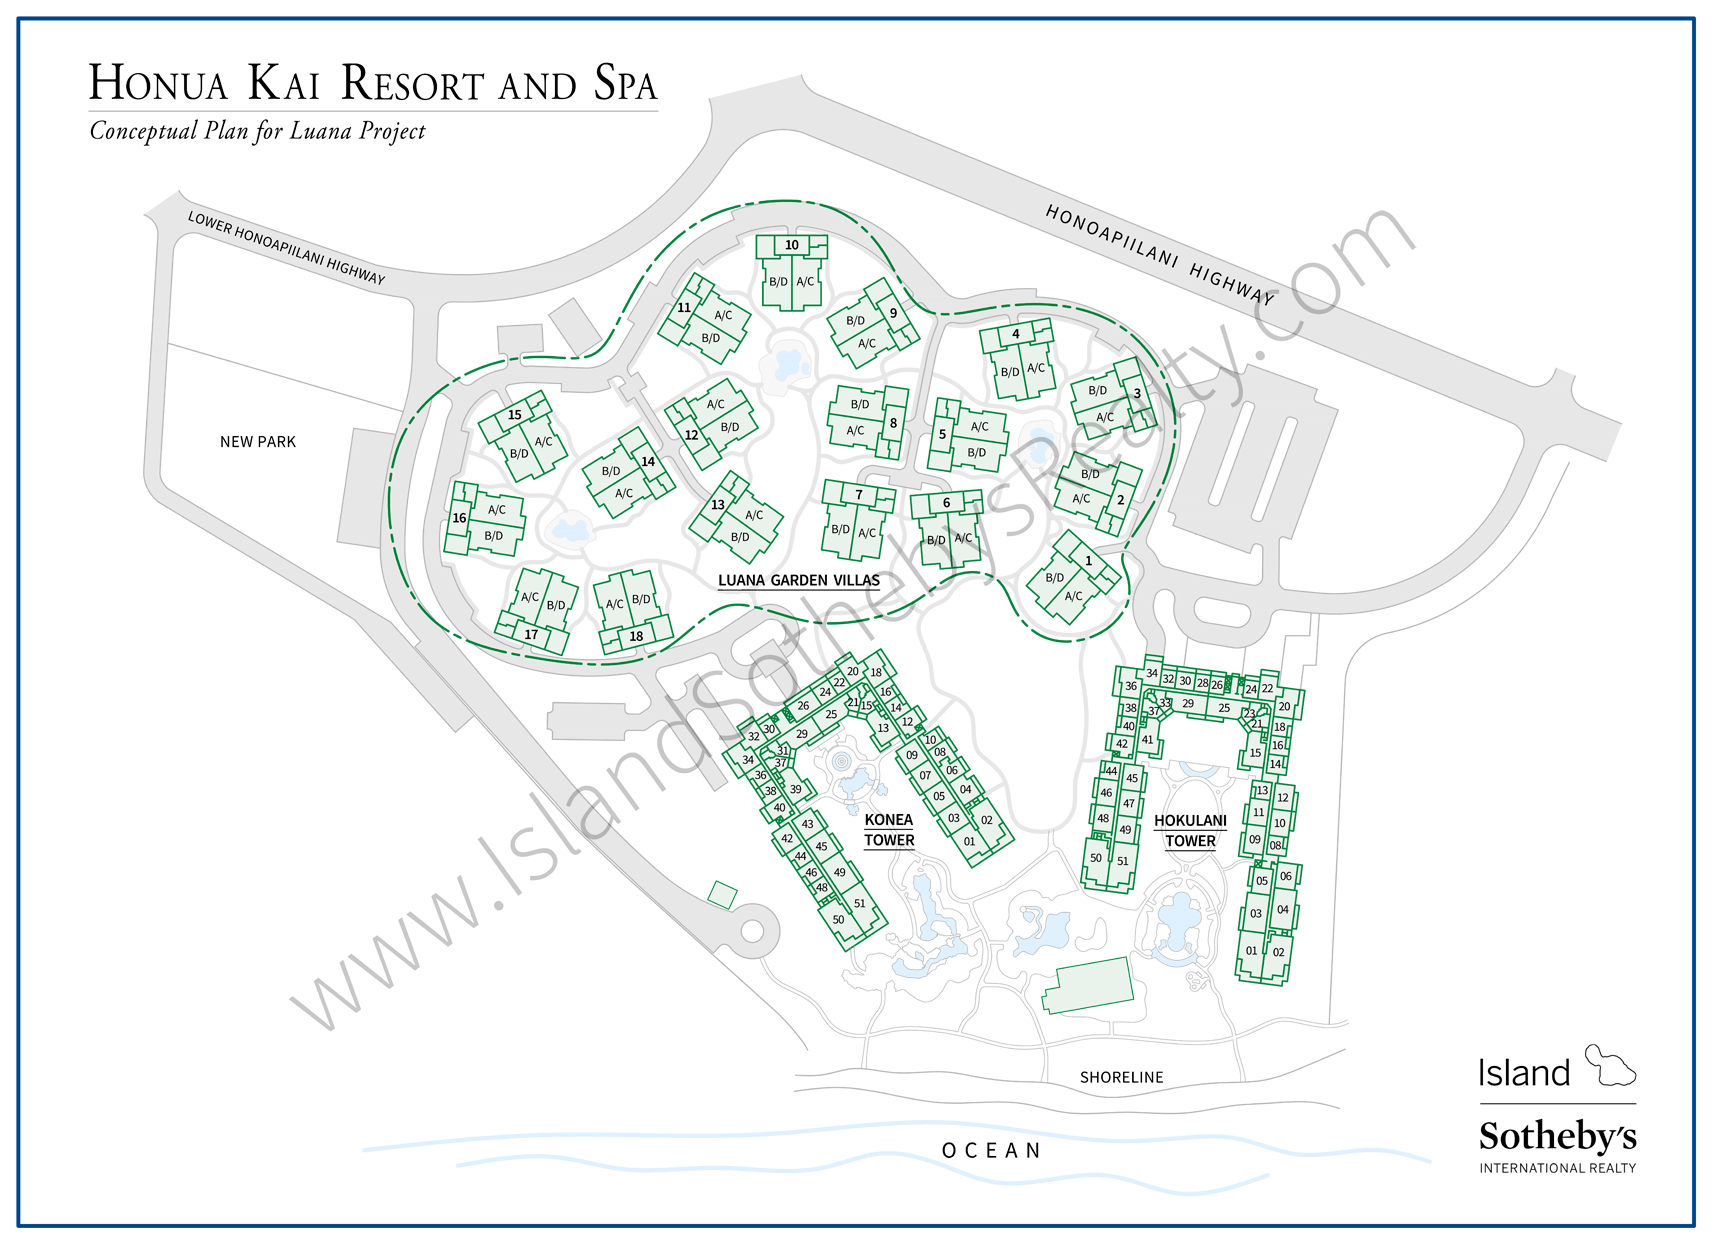 Map Honua Kai and Luana Garden Villas